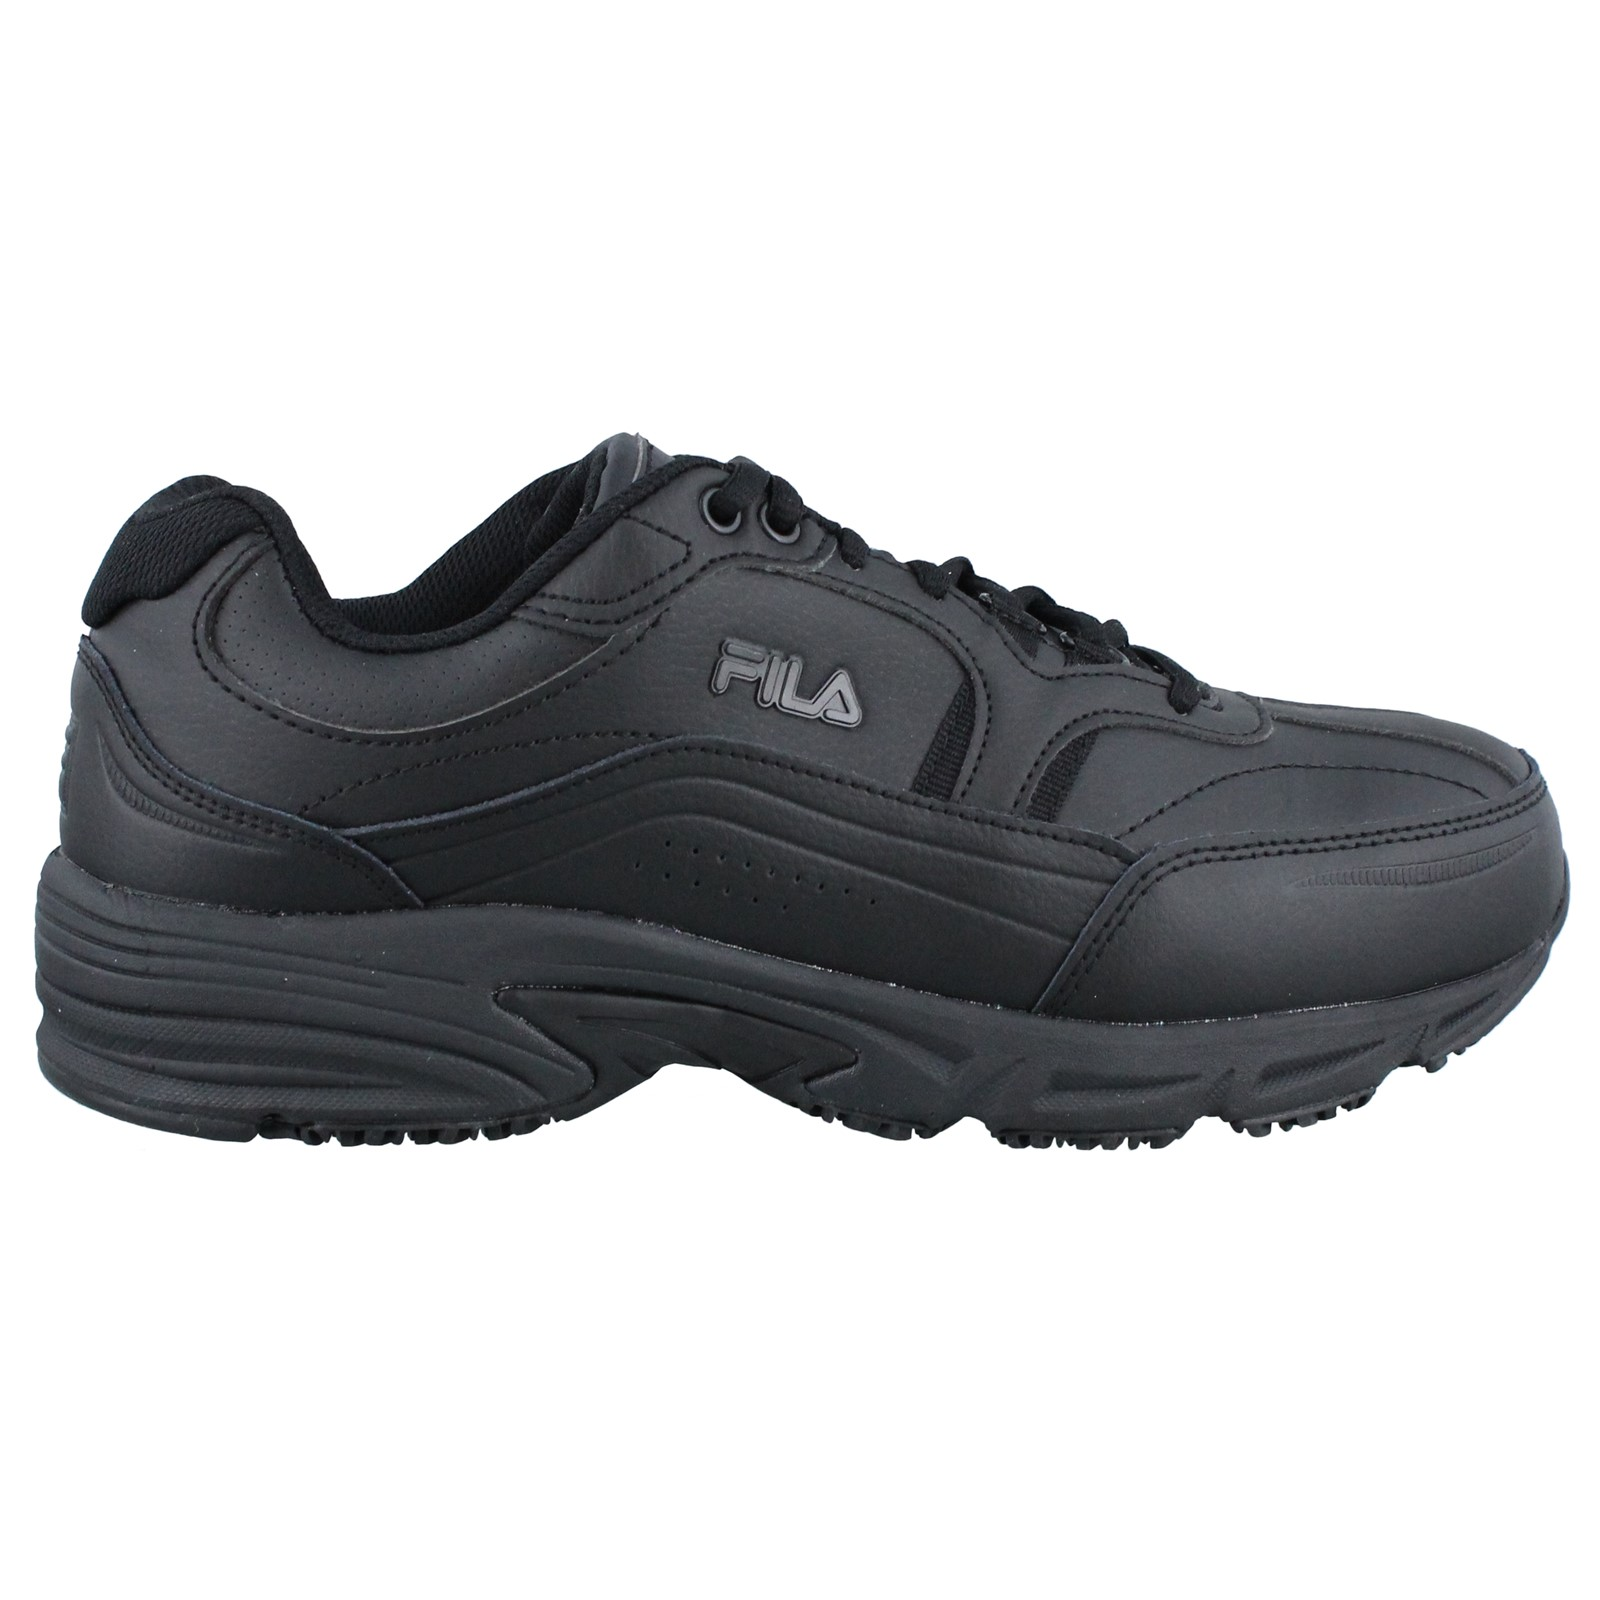 Men's Fila, Memory Workshift Slip Resistant Composite Toe Work Shoe Wide Width